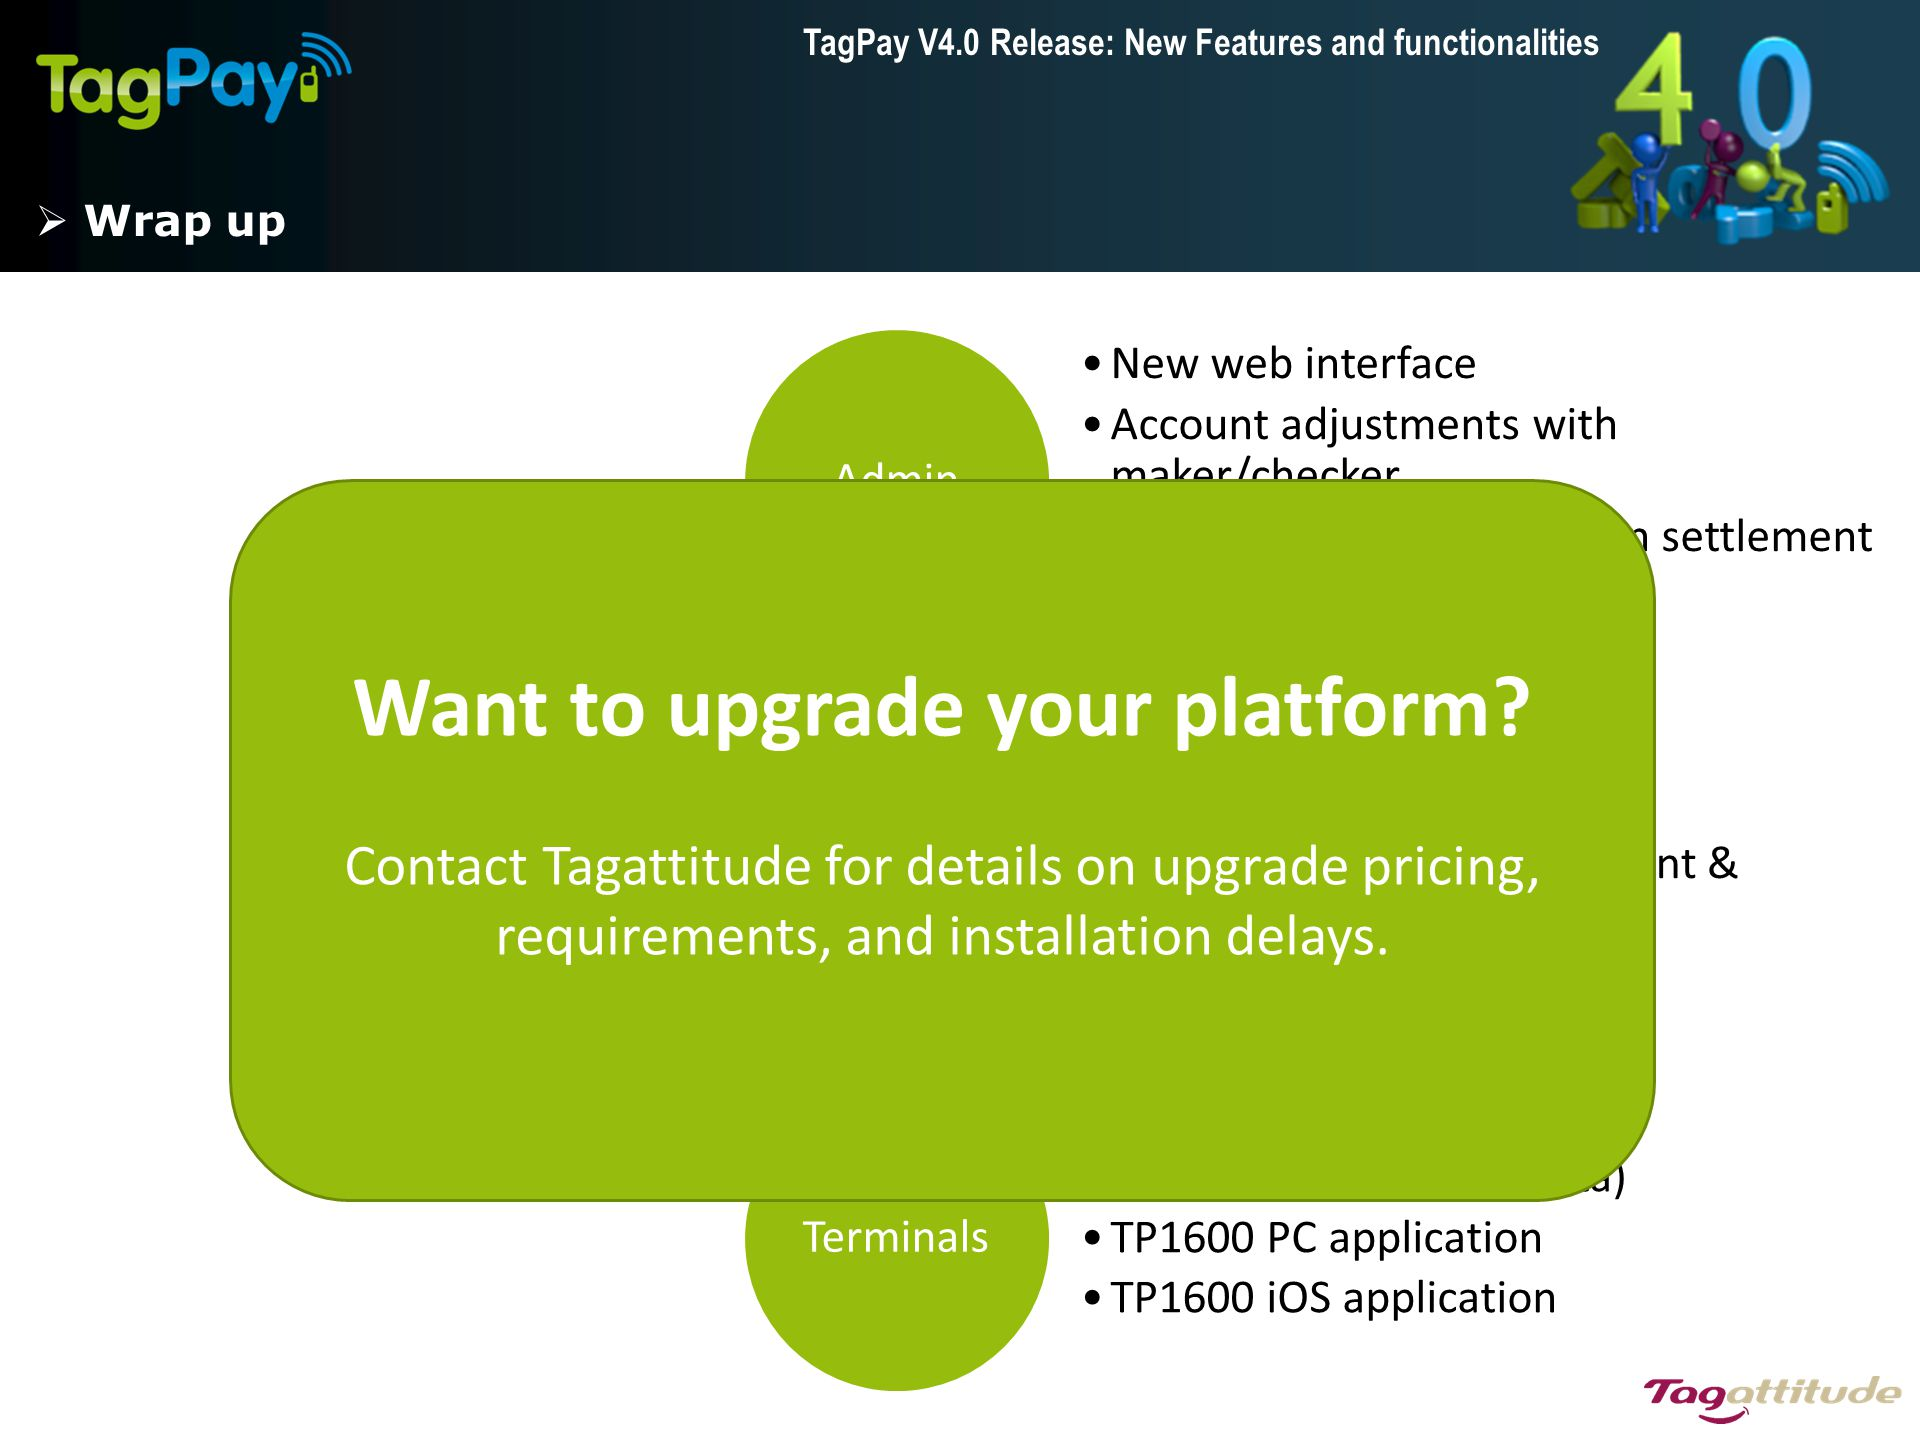 Want to upgrade your platform